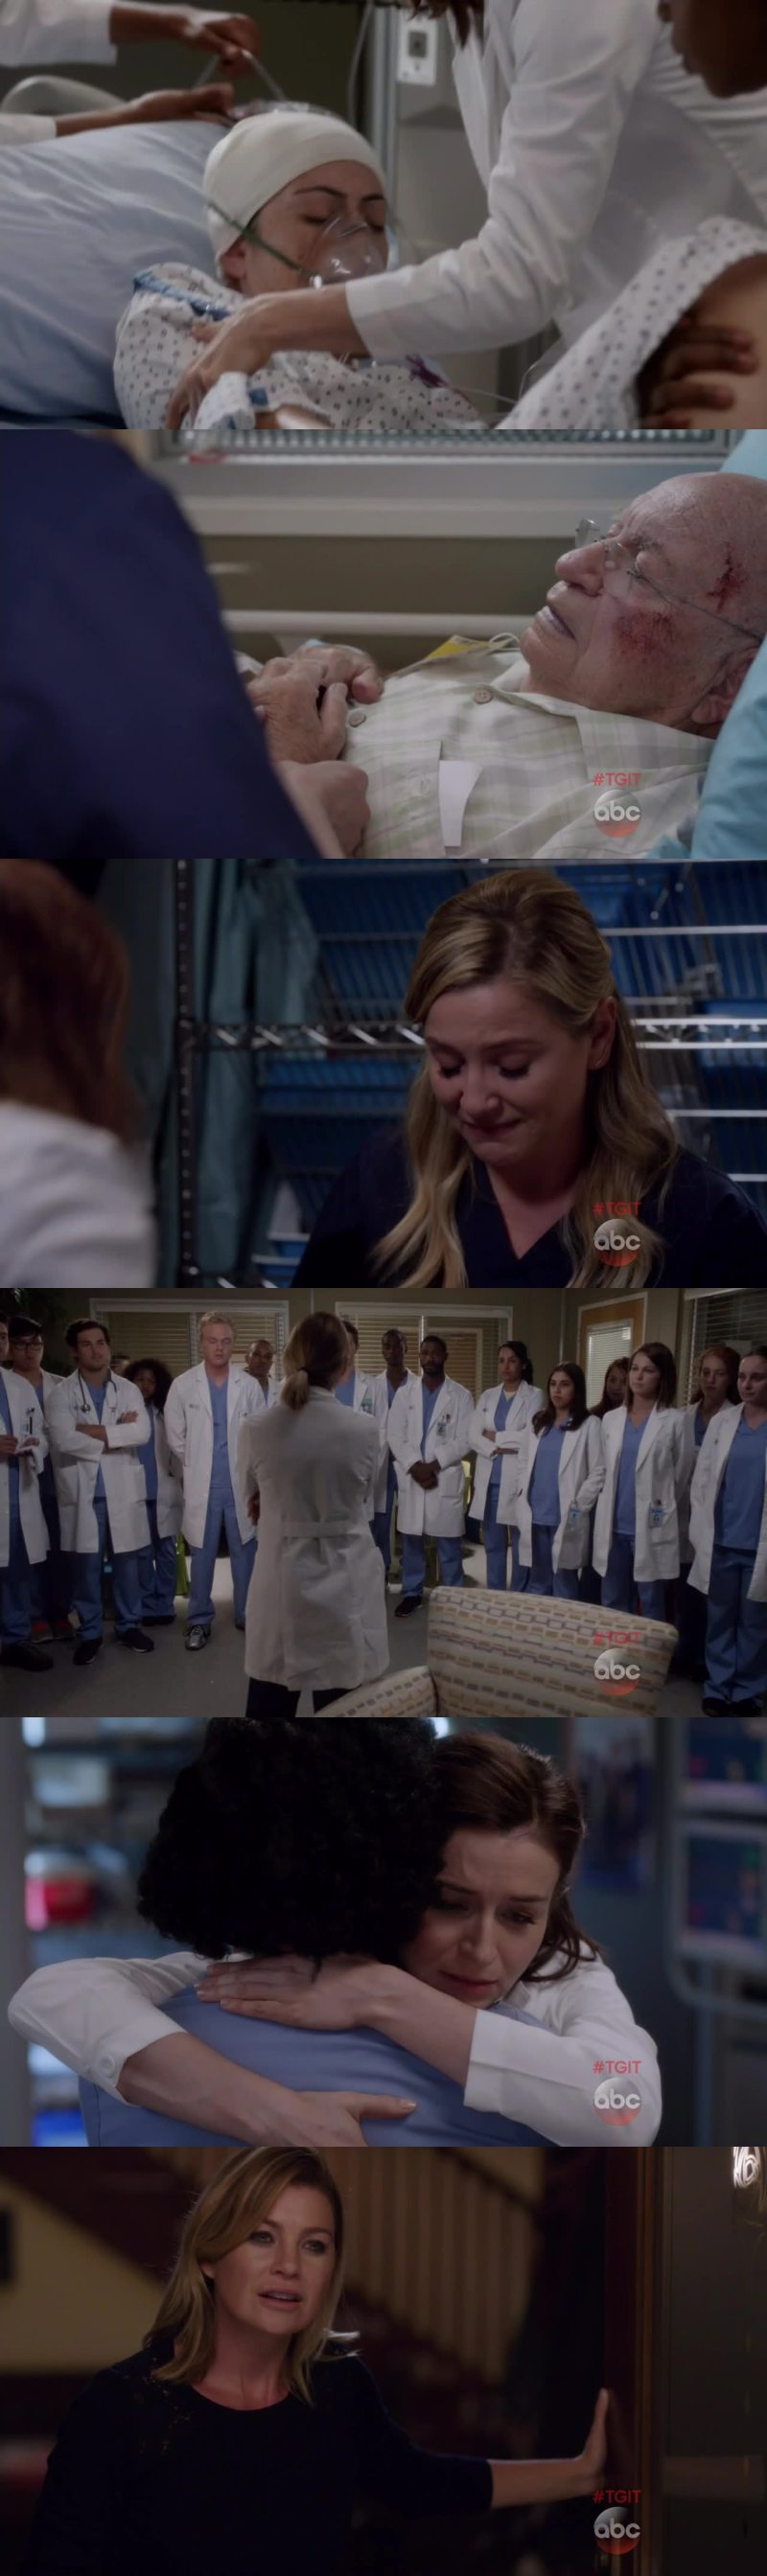 Shonda makes me cry during 80% of this episode :(